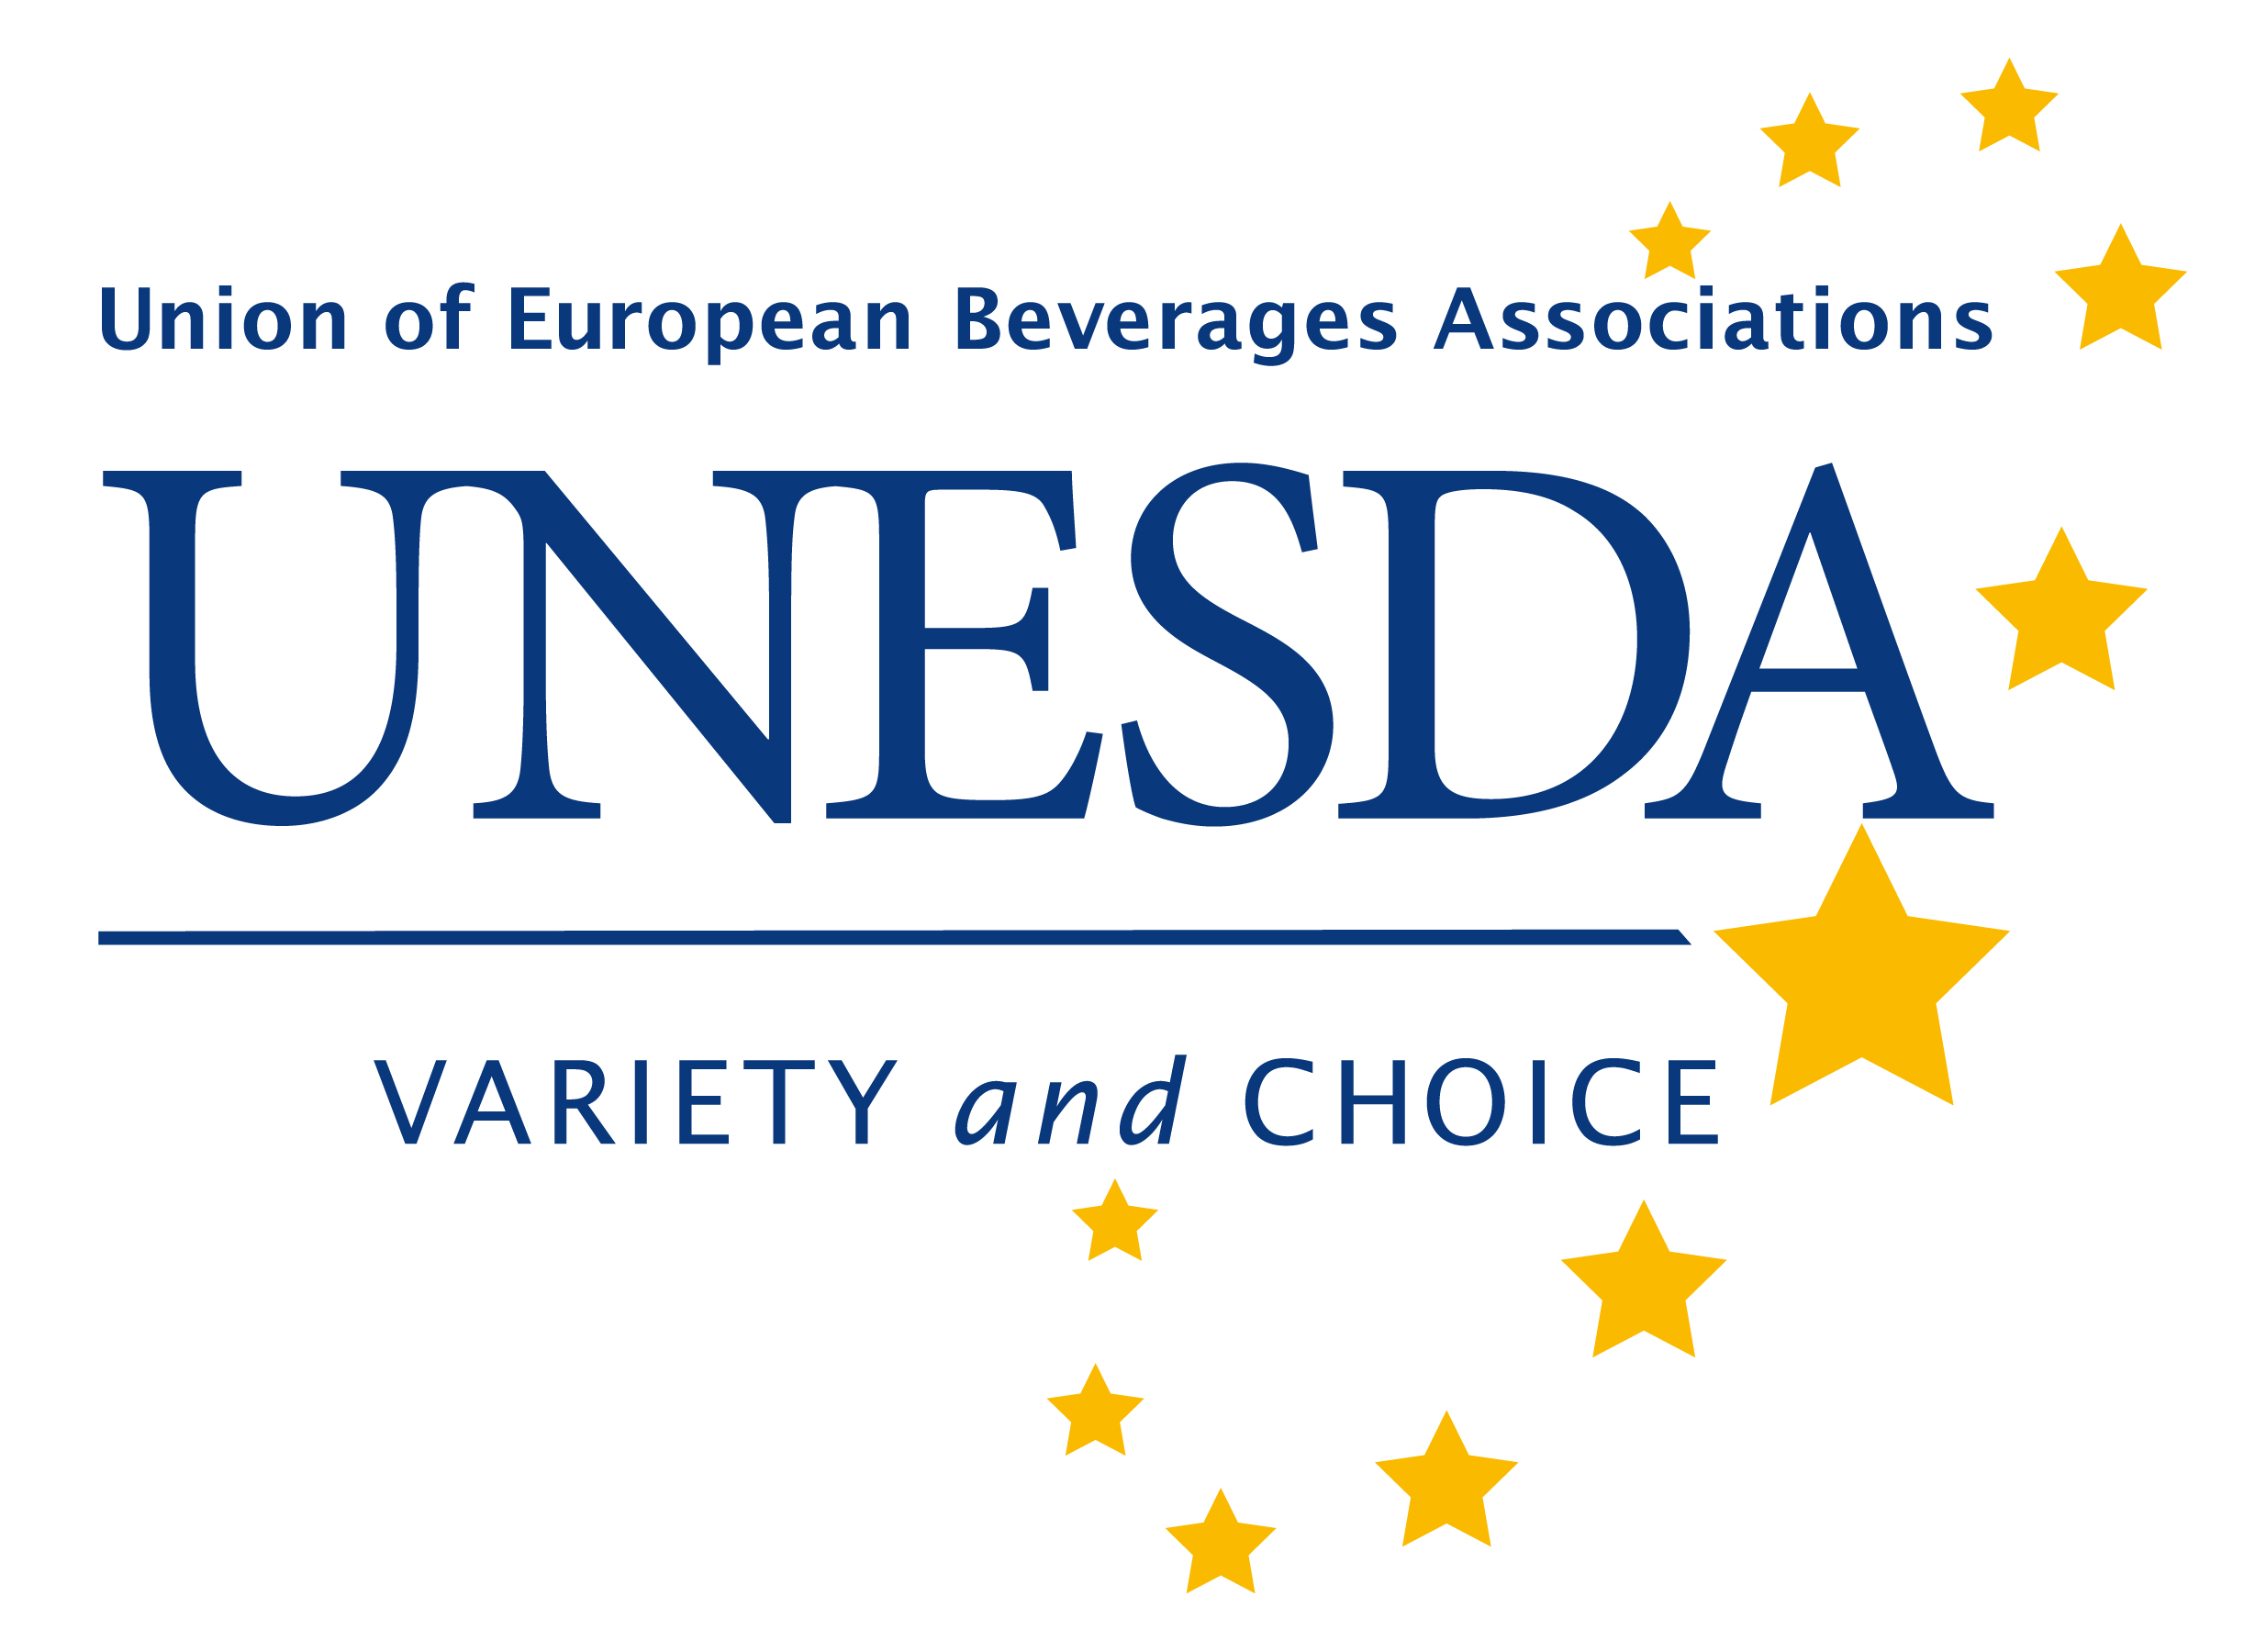 logo for Union of European Beverages Associations